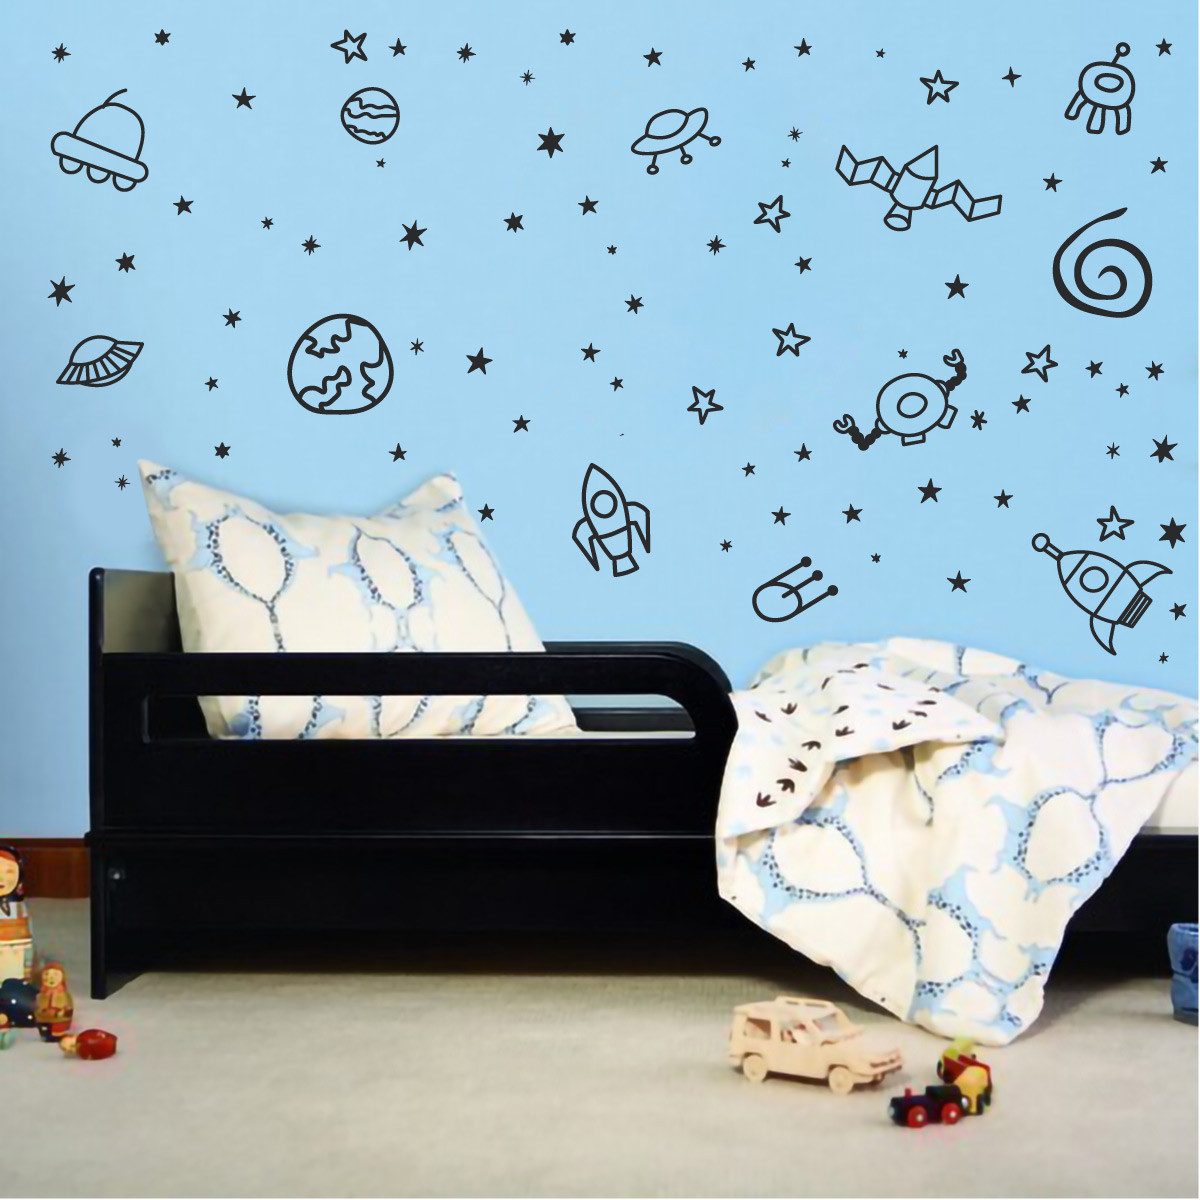 Boys Room Walls Outerspace Planet Galaxy Space Ship Stars Boys Room Vinyl Wall Decal Sticker